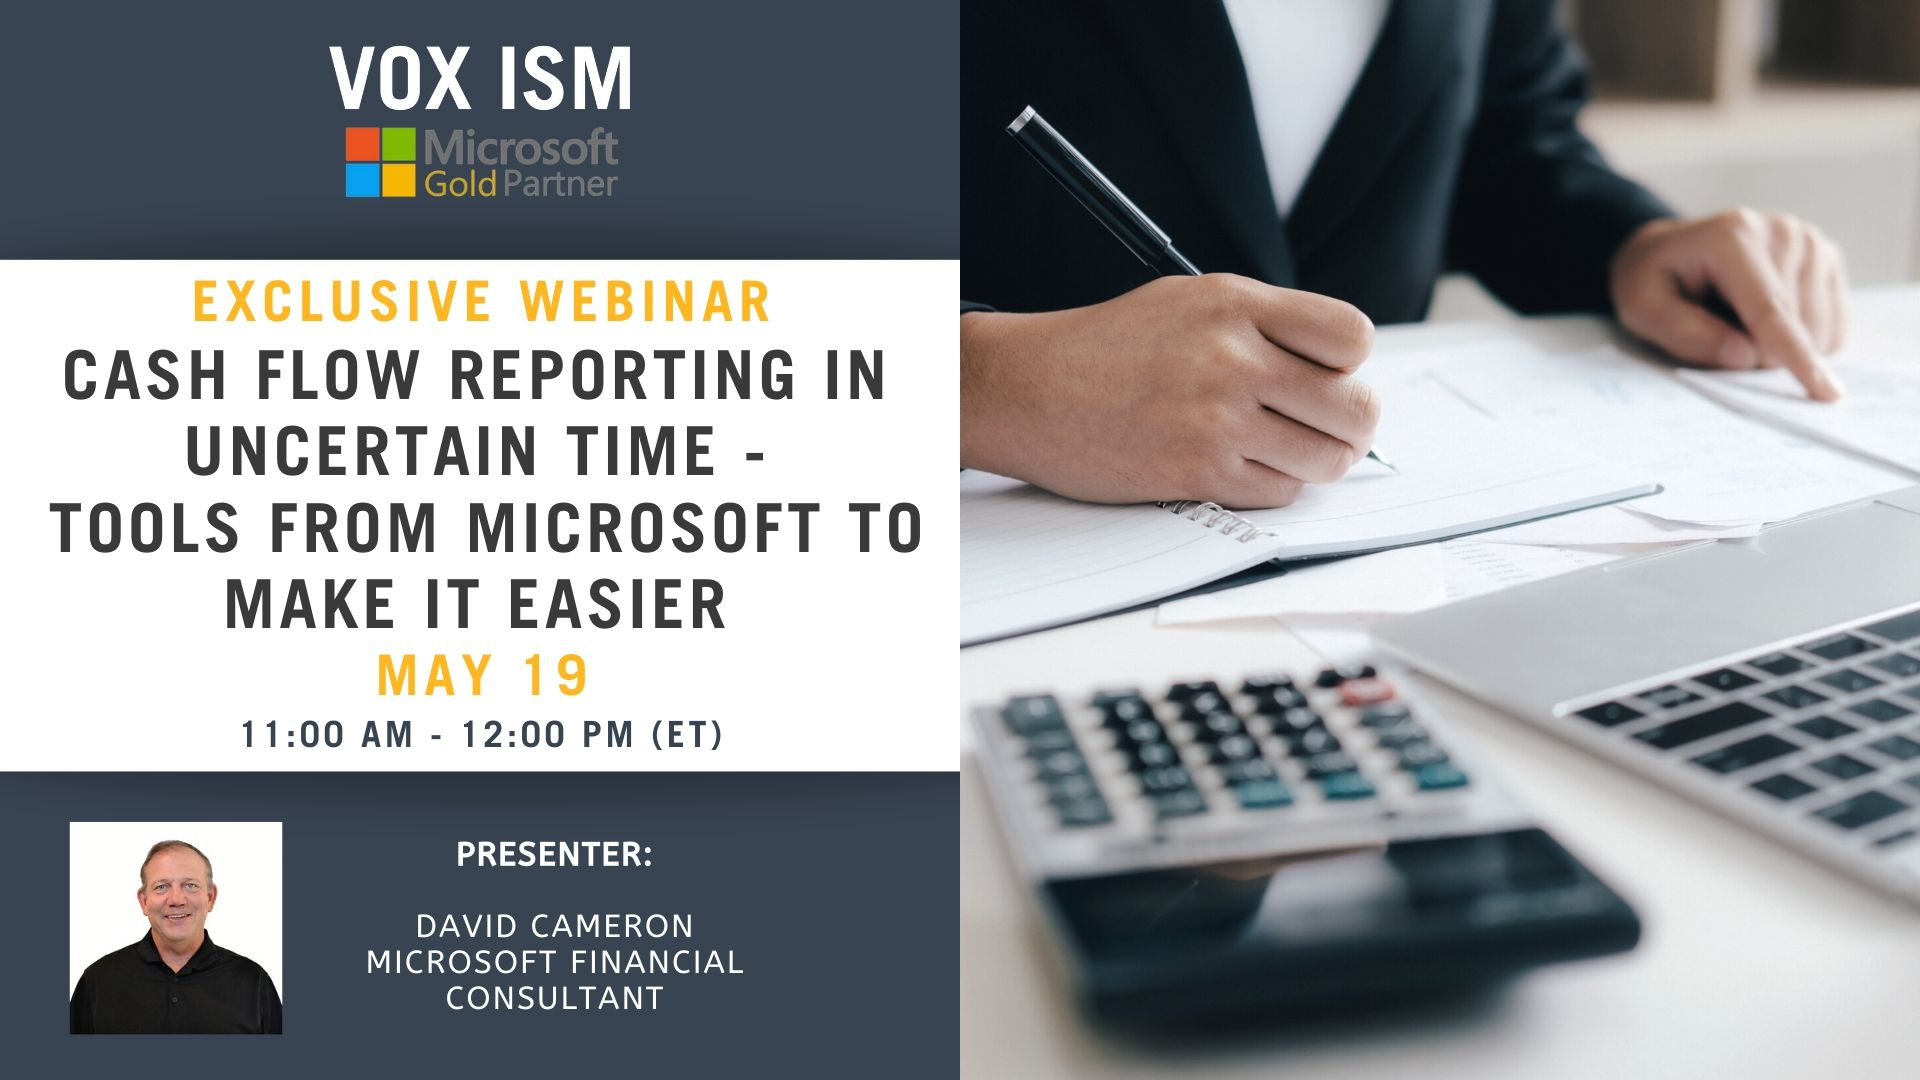 Cash Flow Reporting during Uncertain Times - Tools to Make it easier from Microsoft - May 19 - Webinar VOX ISM